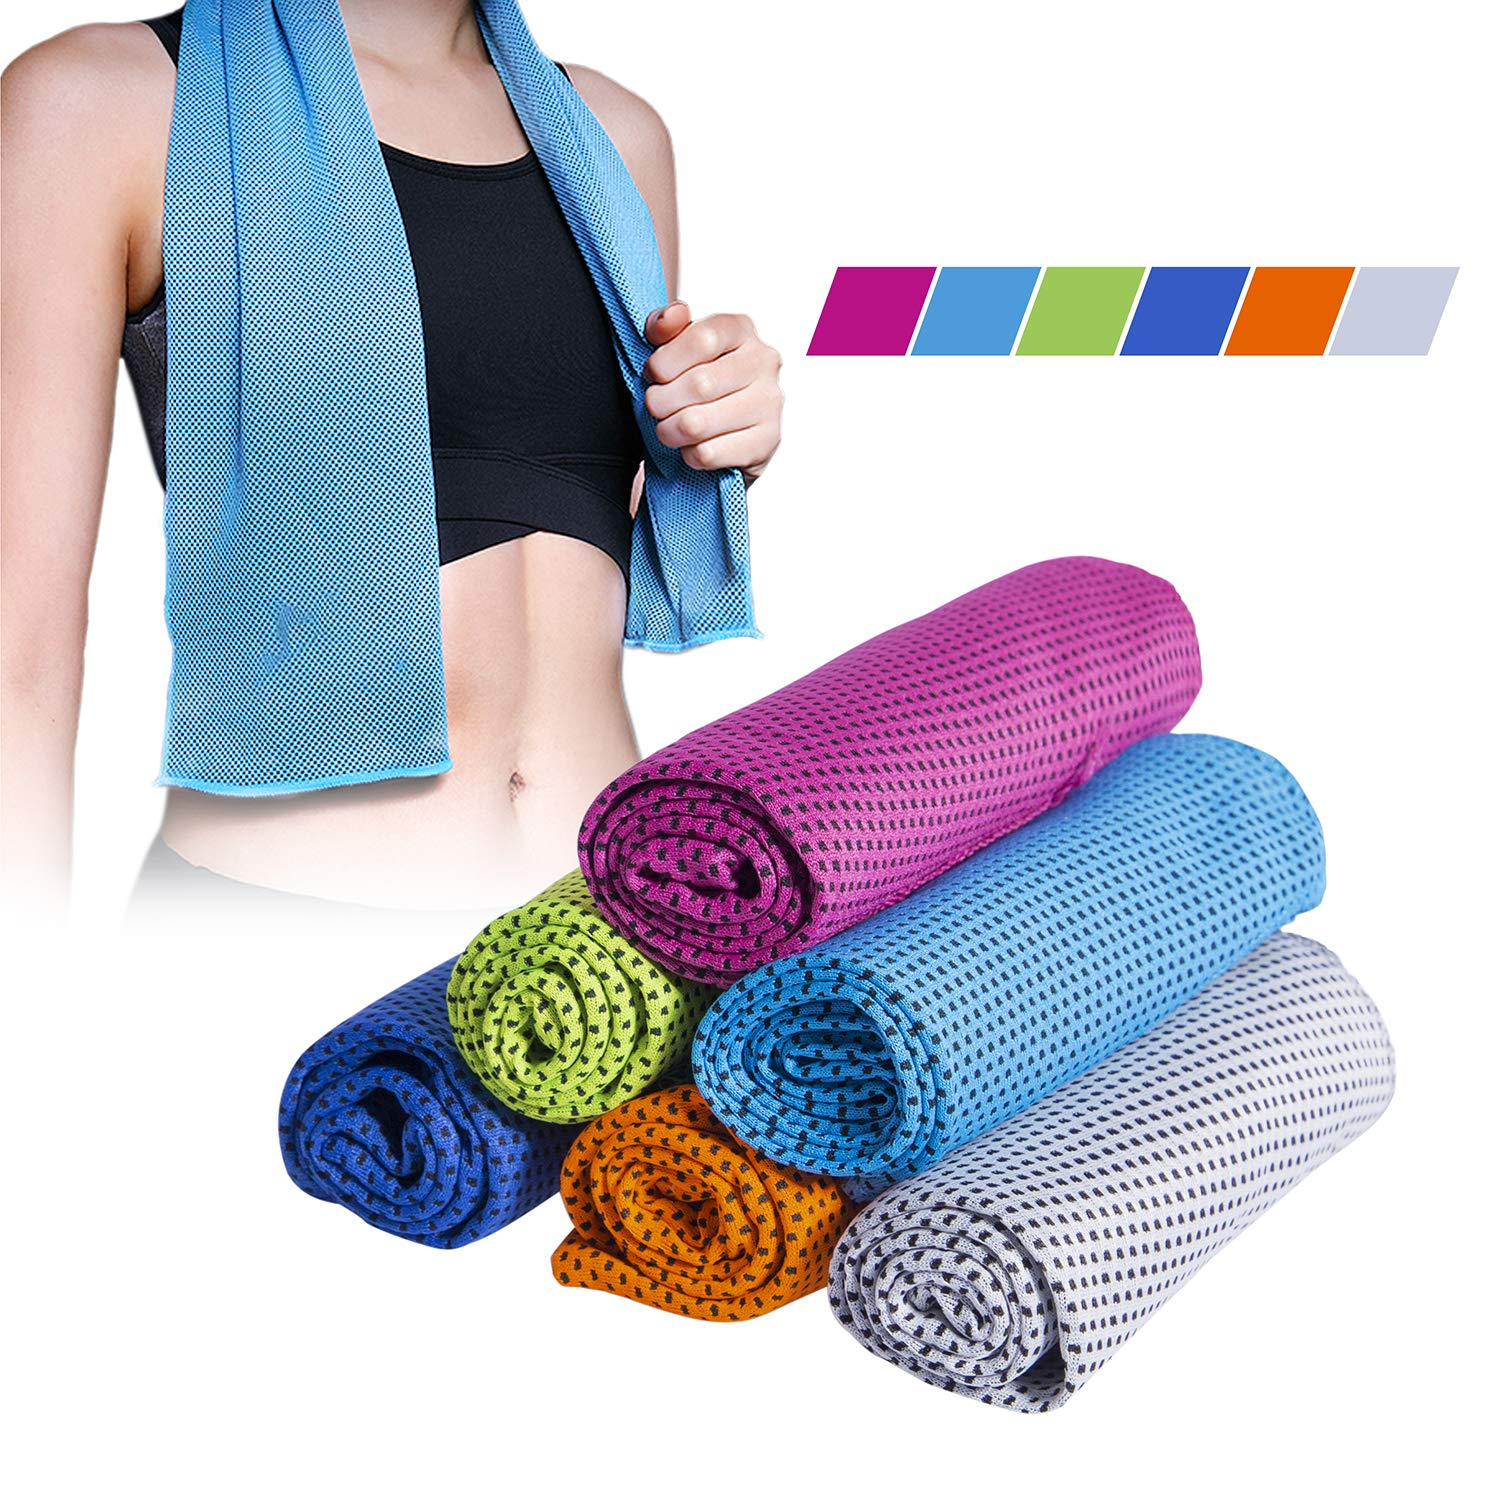 Darller 6 Pack Sport Neck Cooling Towel - Magic Gym Workout Sweat Cool Towels